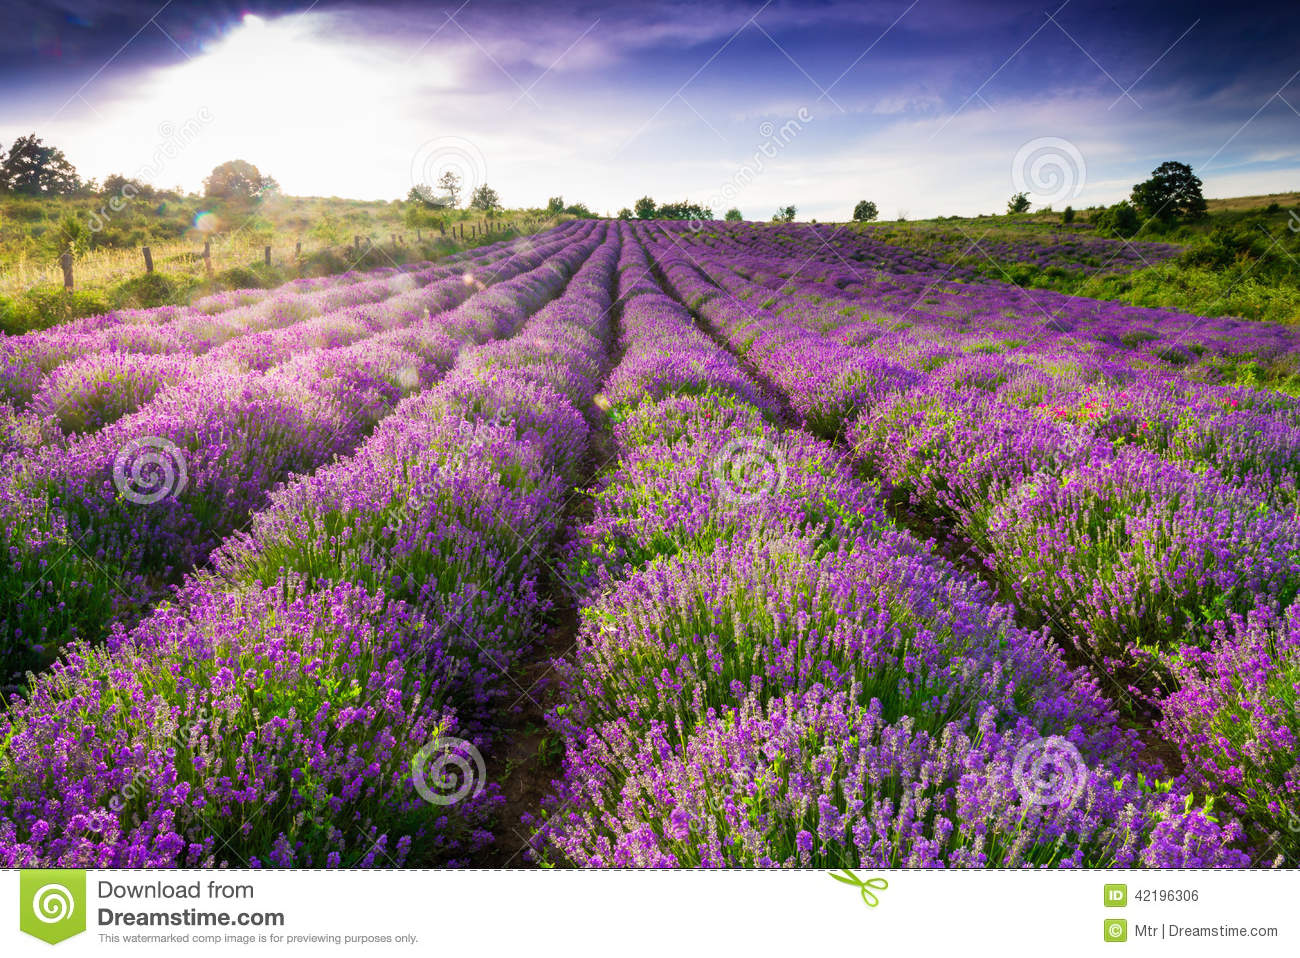 Lavender Field Stock Photo - Image: 42196306